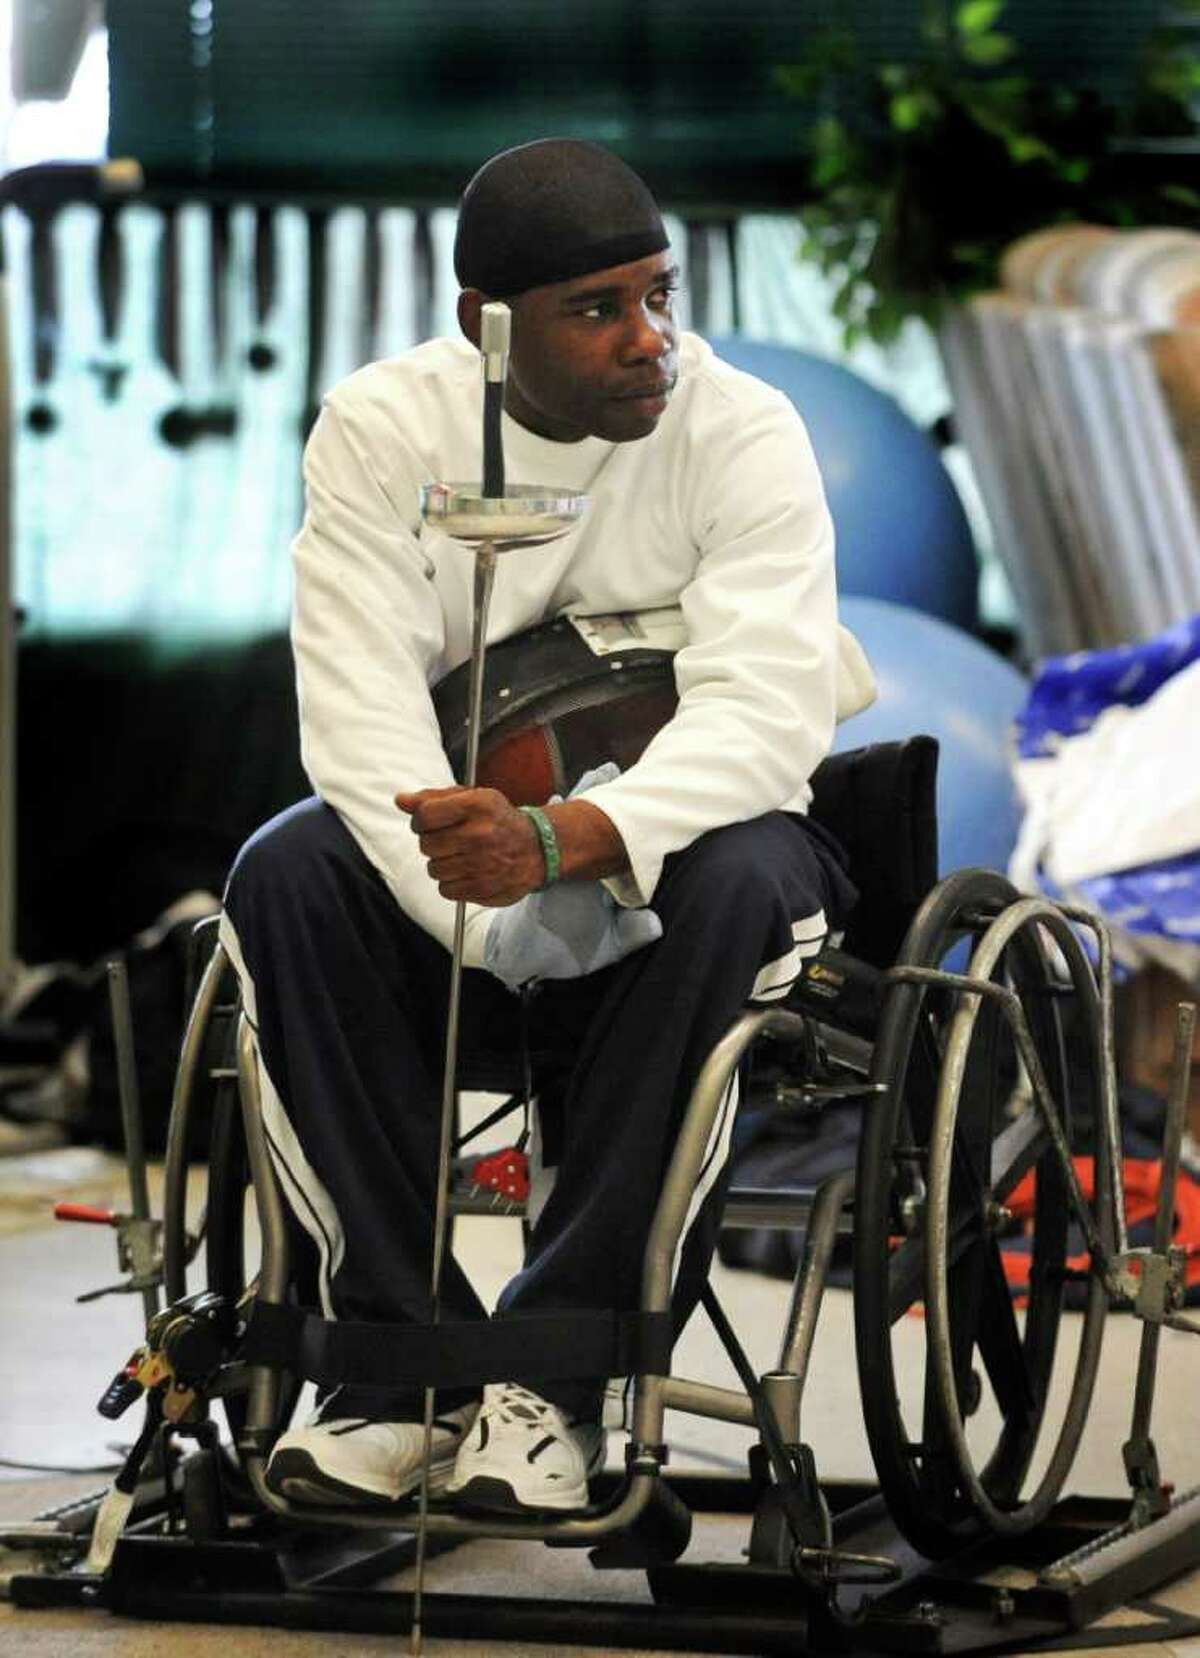 Andre Cook, a serviceman who is receiving from leg wounds suffered in service, prepares to fence at the San Antonio Fencing Center. March 24, 2011. BILLY CALZADA / gcalzada@express-news.net belasco story